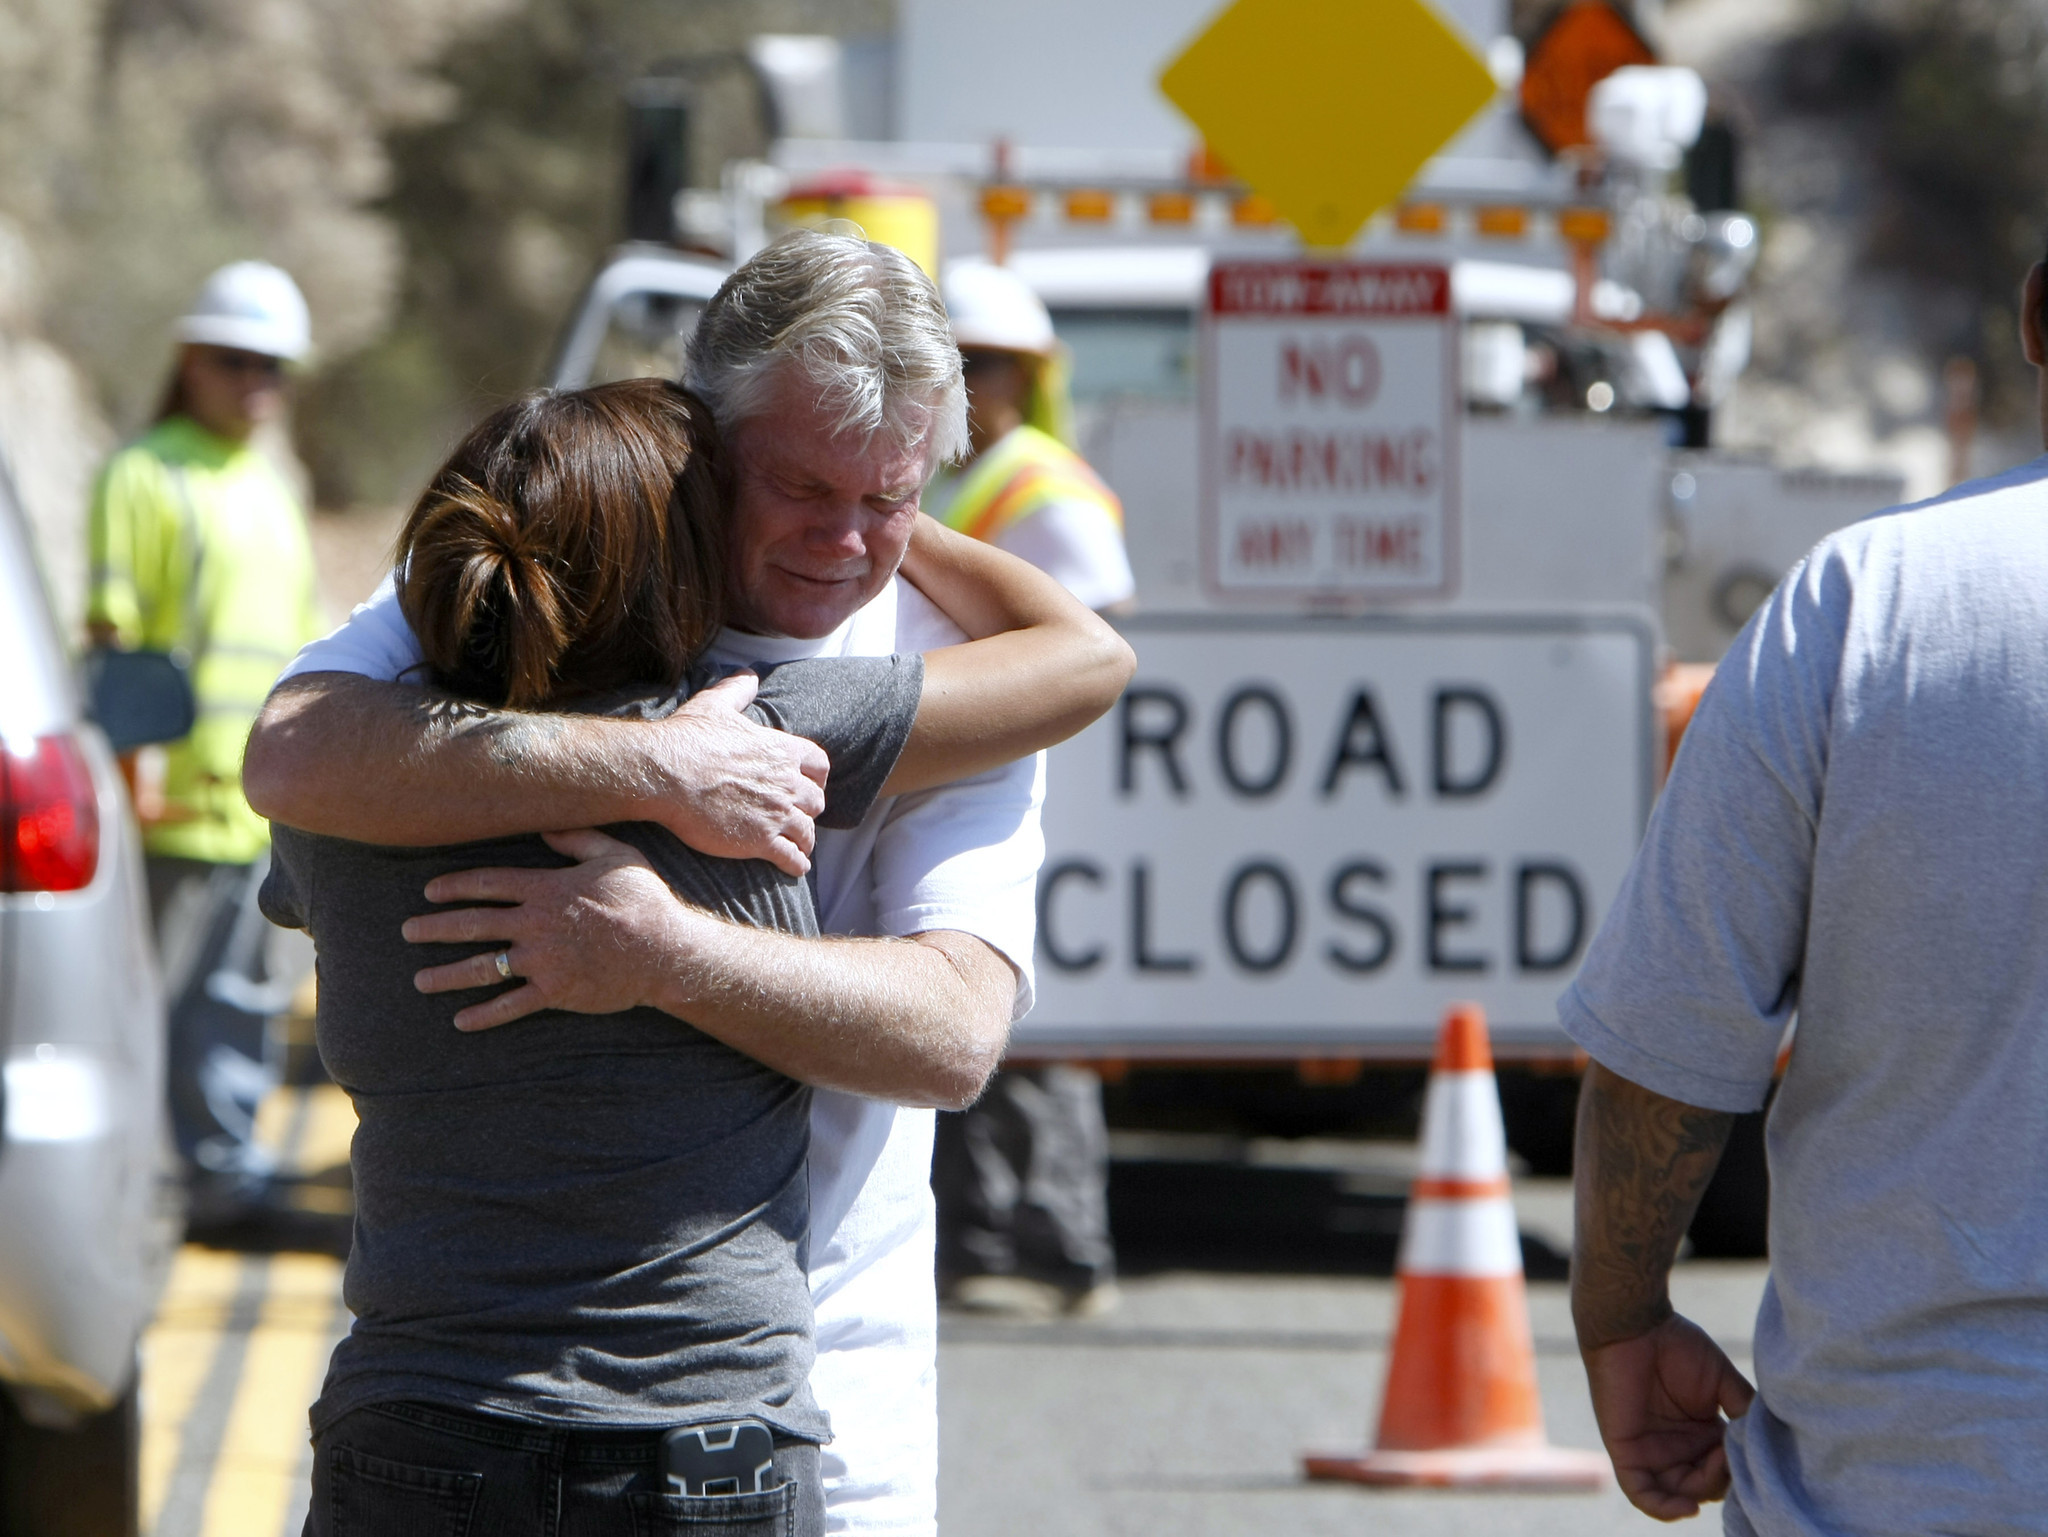 Mari Tovar, Samantha Ornelas' aunt, is hugged by the father of Kasey Vance, who did not want to give his name, as they arrive to find gates closing off Angeles Crest Highway near where the bodies of three people were being recovered Tuesday.